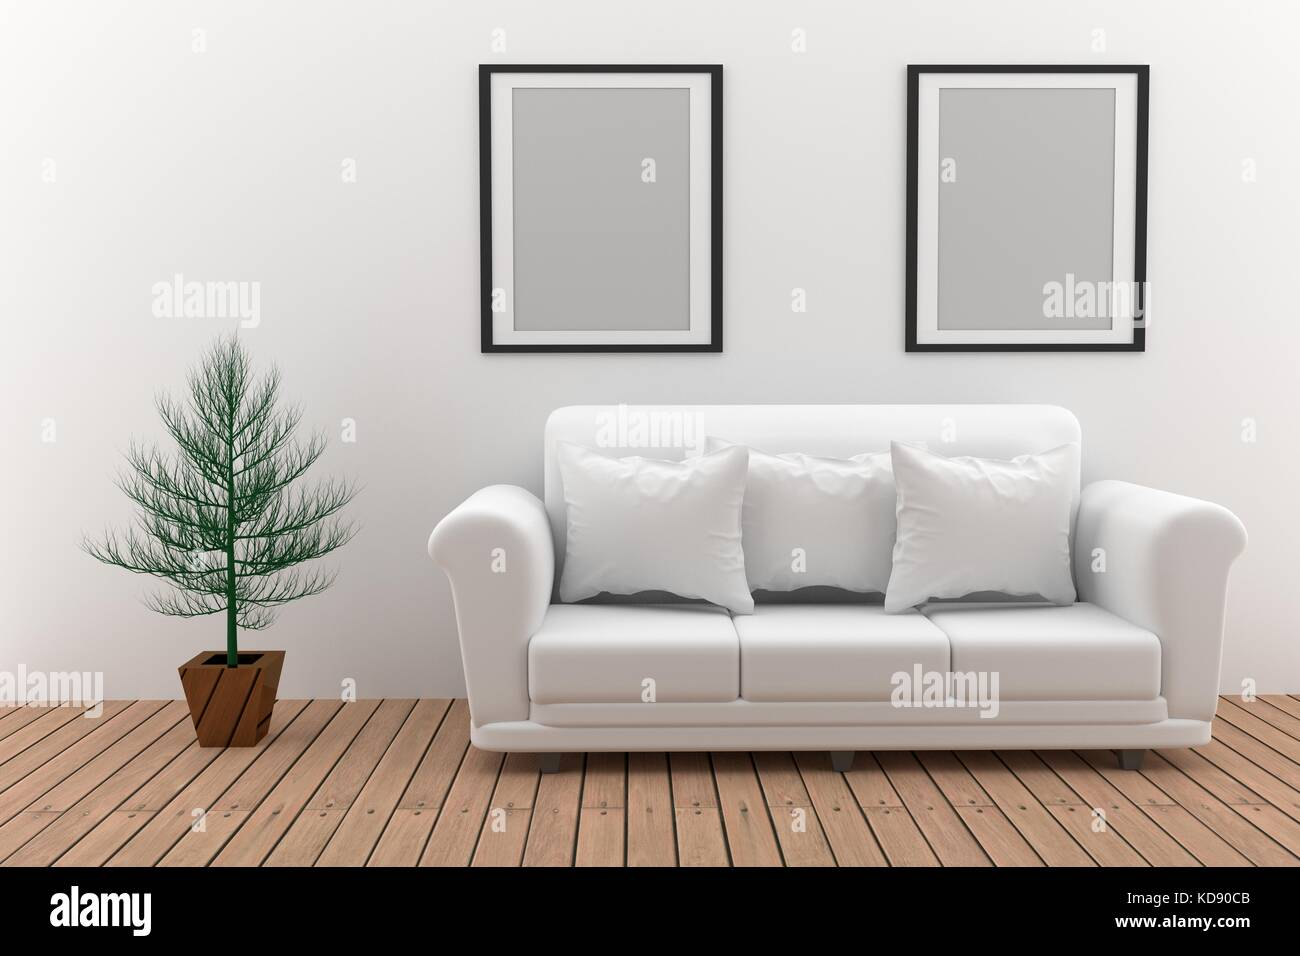 Mock Up Minimalist White Sofa With Plant In 3D Rendering   Stock Image